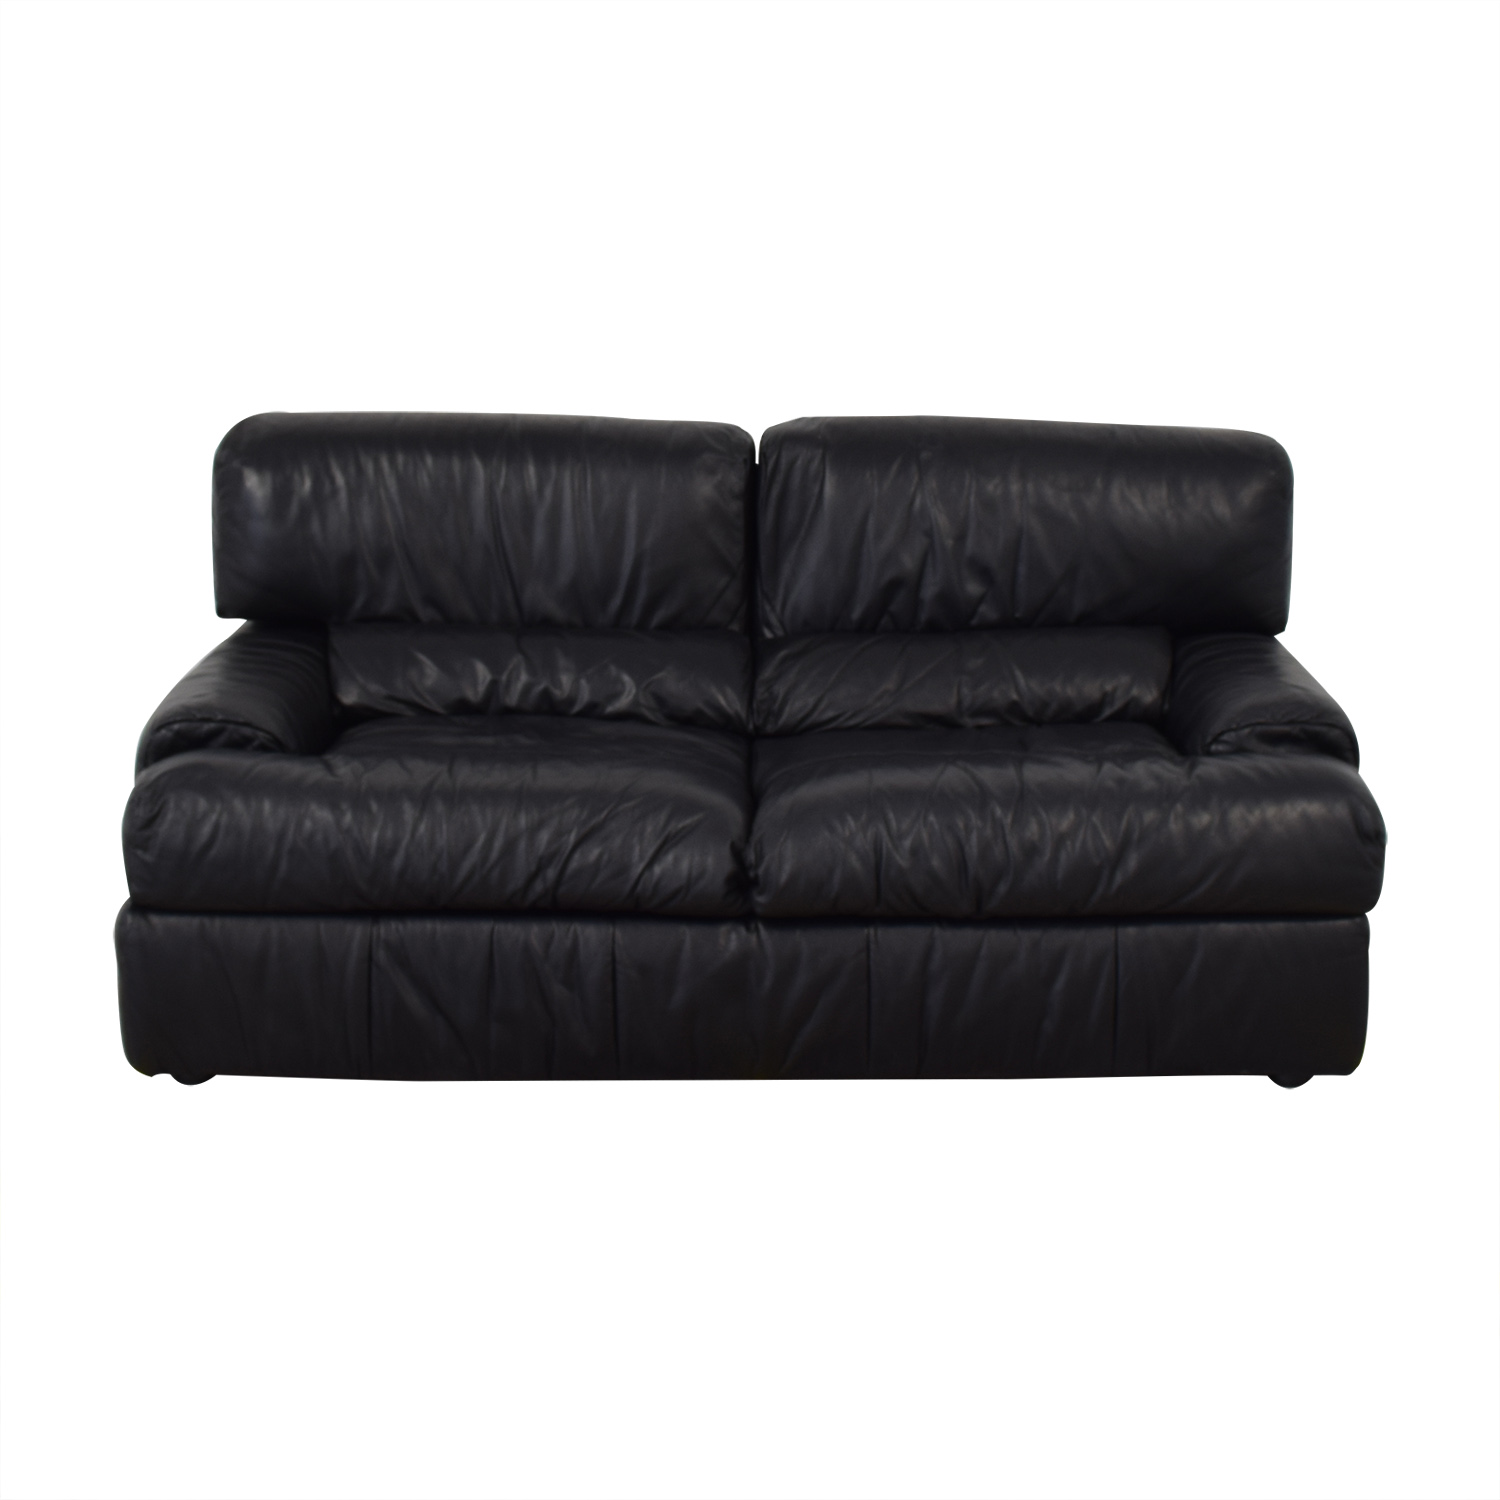 Norwalk Leather Sofa: Norwalk Furniture Norwalk Furniture Loveseat / Sofas